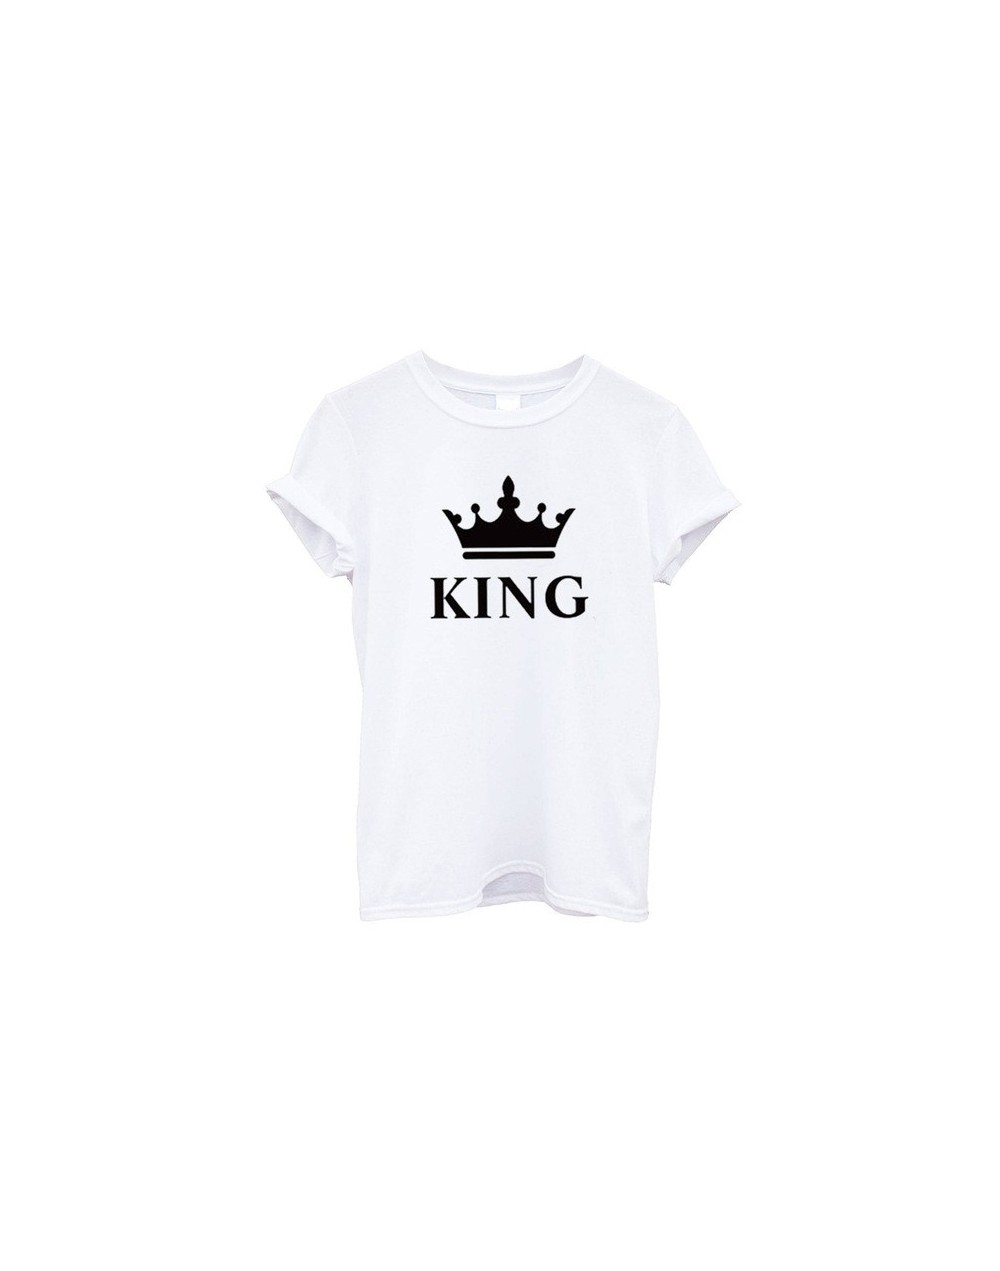 Summer Family Matching Clothing Son and Daughter T Shirt King Queen Father Mom Tops Unisex Short Sleeve Cotton Tshirt Street...